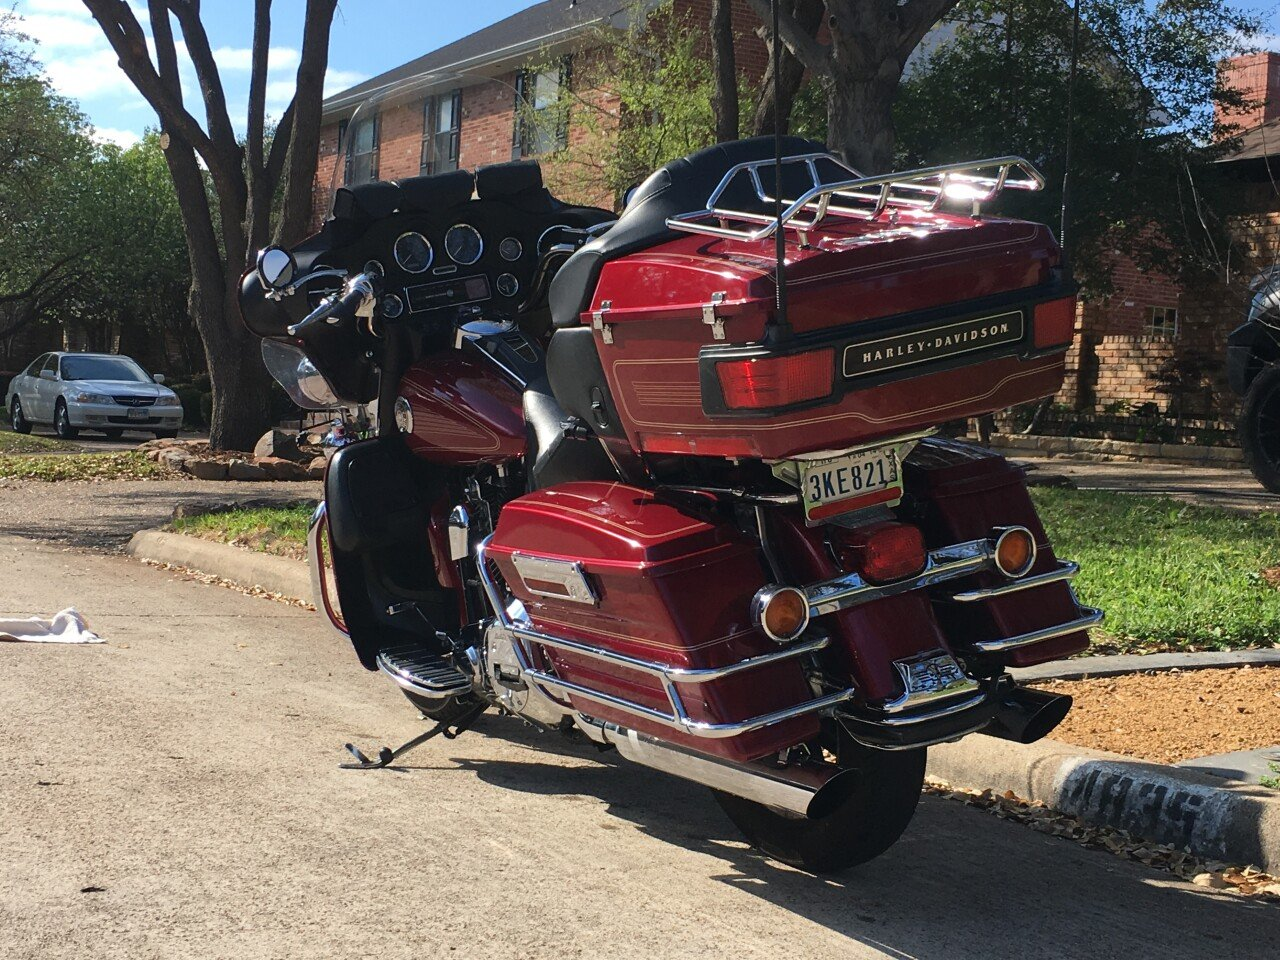 2018 Harley Davidson Motorcycles For Sale Texas >> 2004 Harley-Davidson Touring Electra Glide Ultra Classic for sale near Dallas, Texas 75287 ...